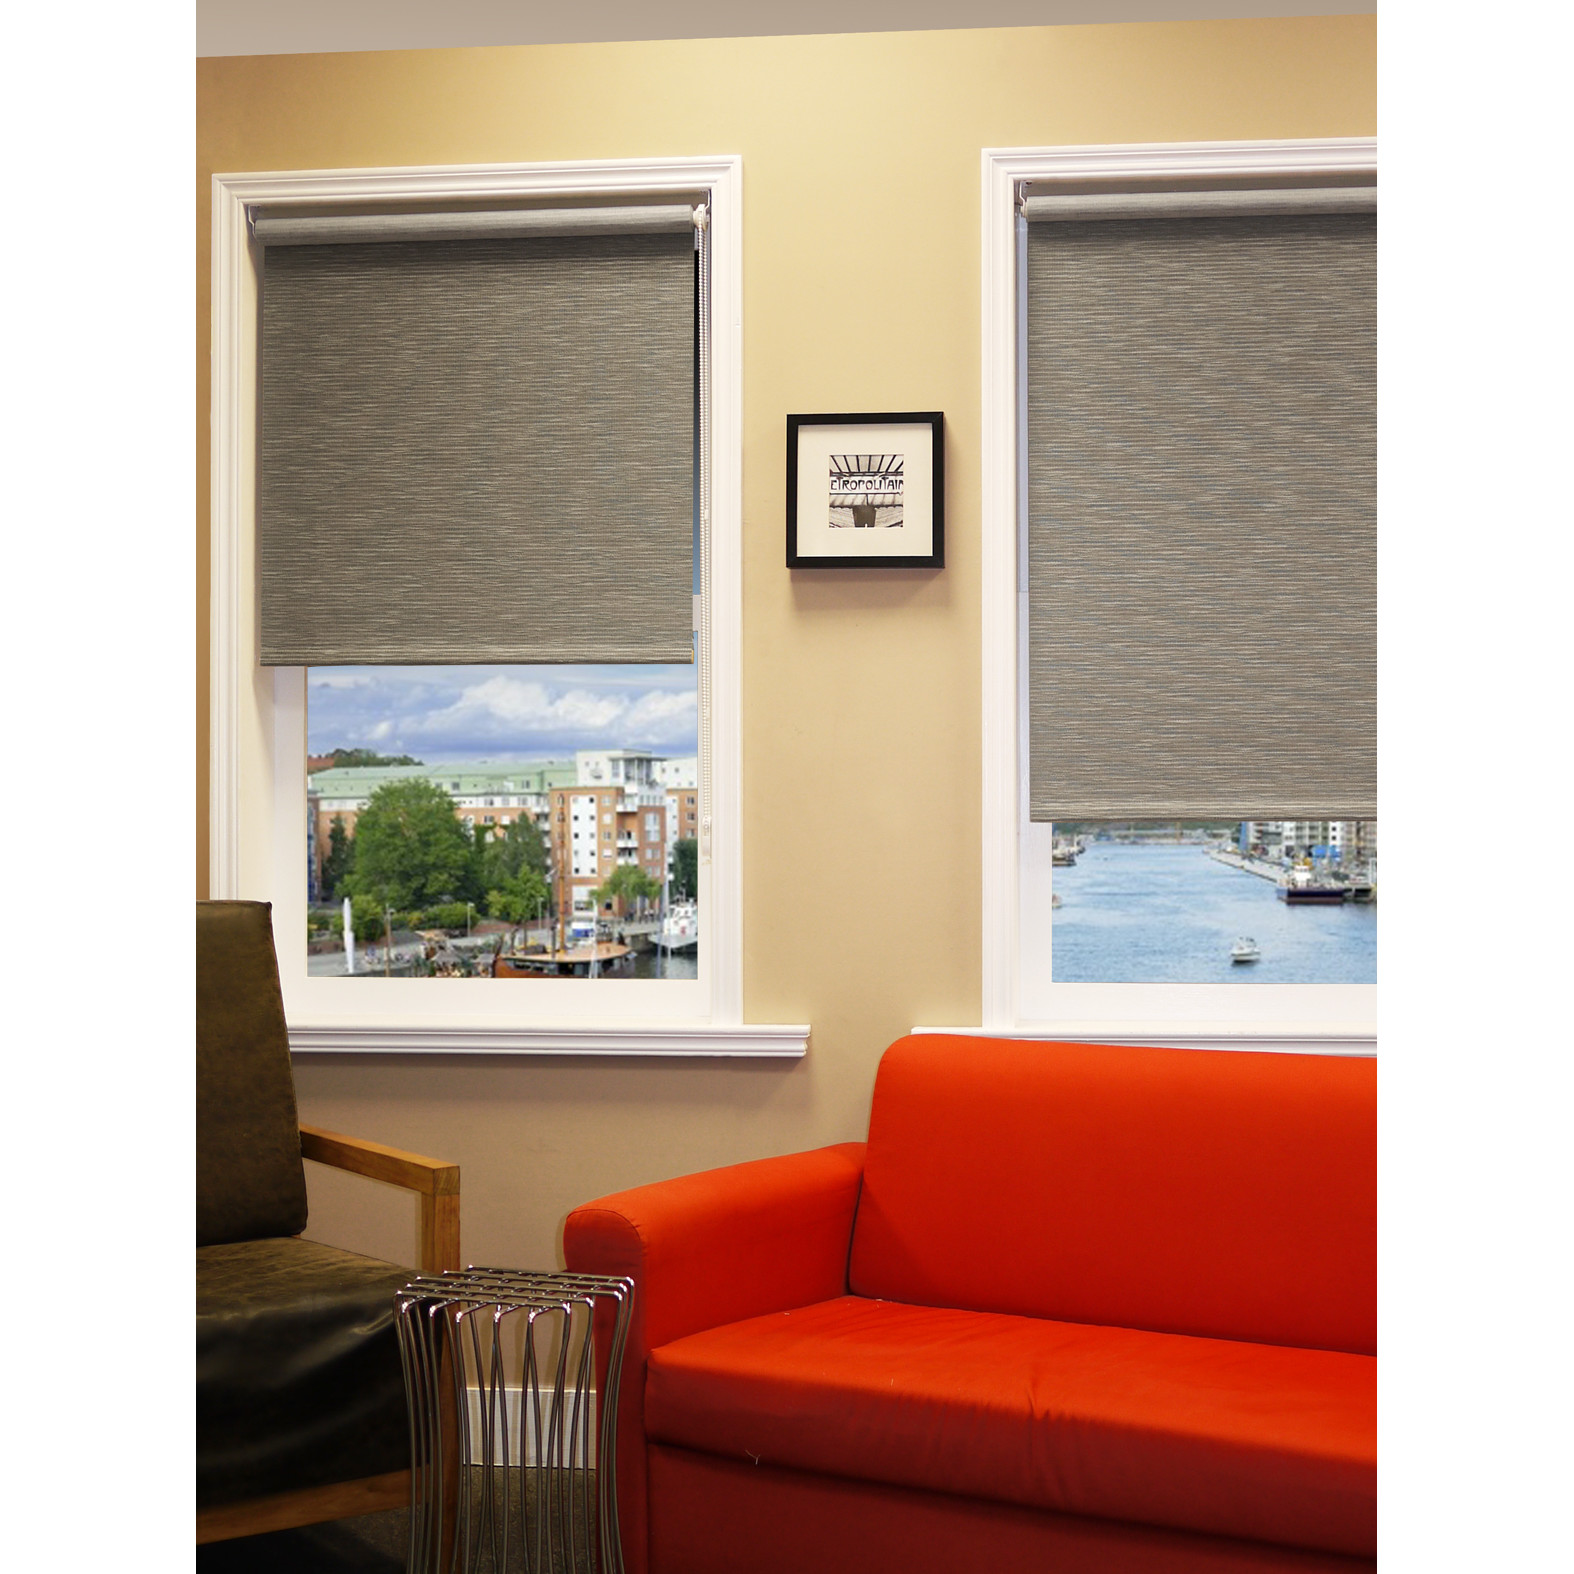 Excellent Menards Window Blinds for Best Window Blind Ideas: Menards Window Blinds | Menards Shop Vac | Menards Website